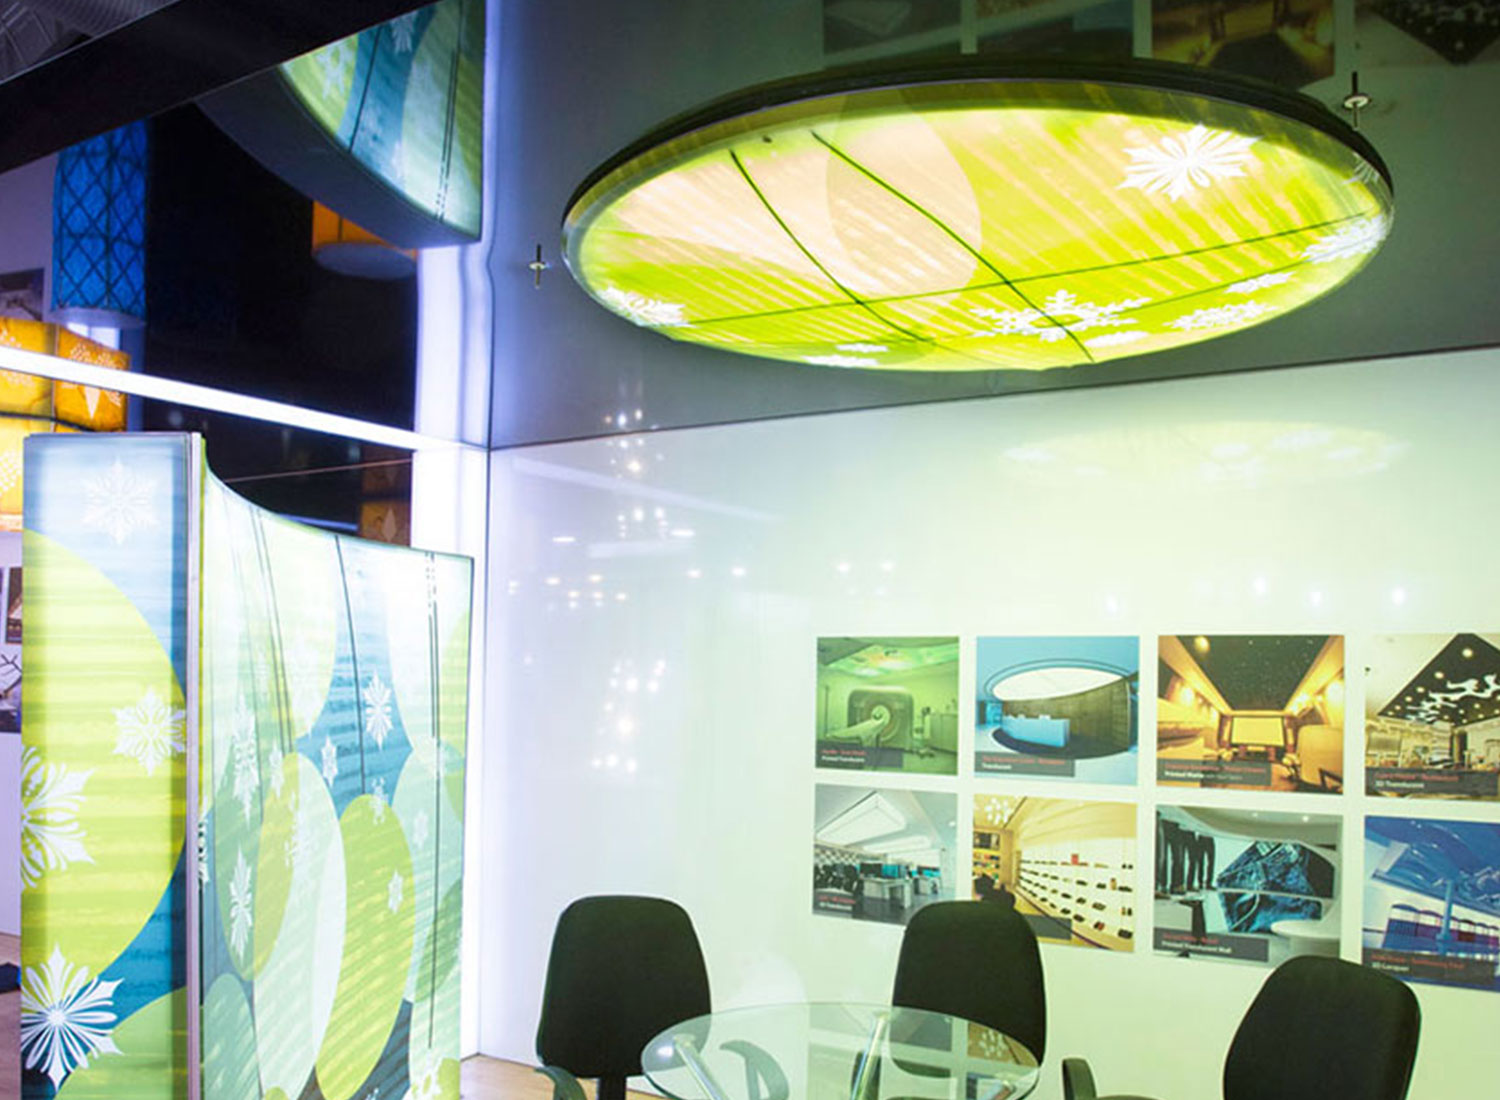 Acetech - Stretch Ceiling  Translucent with Backlighting in event - Event - Mumbai